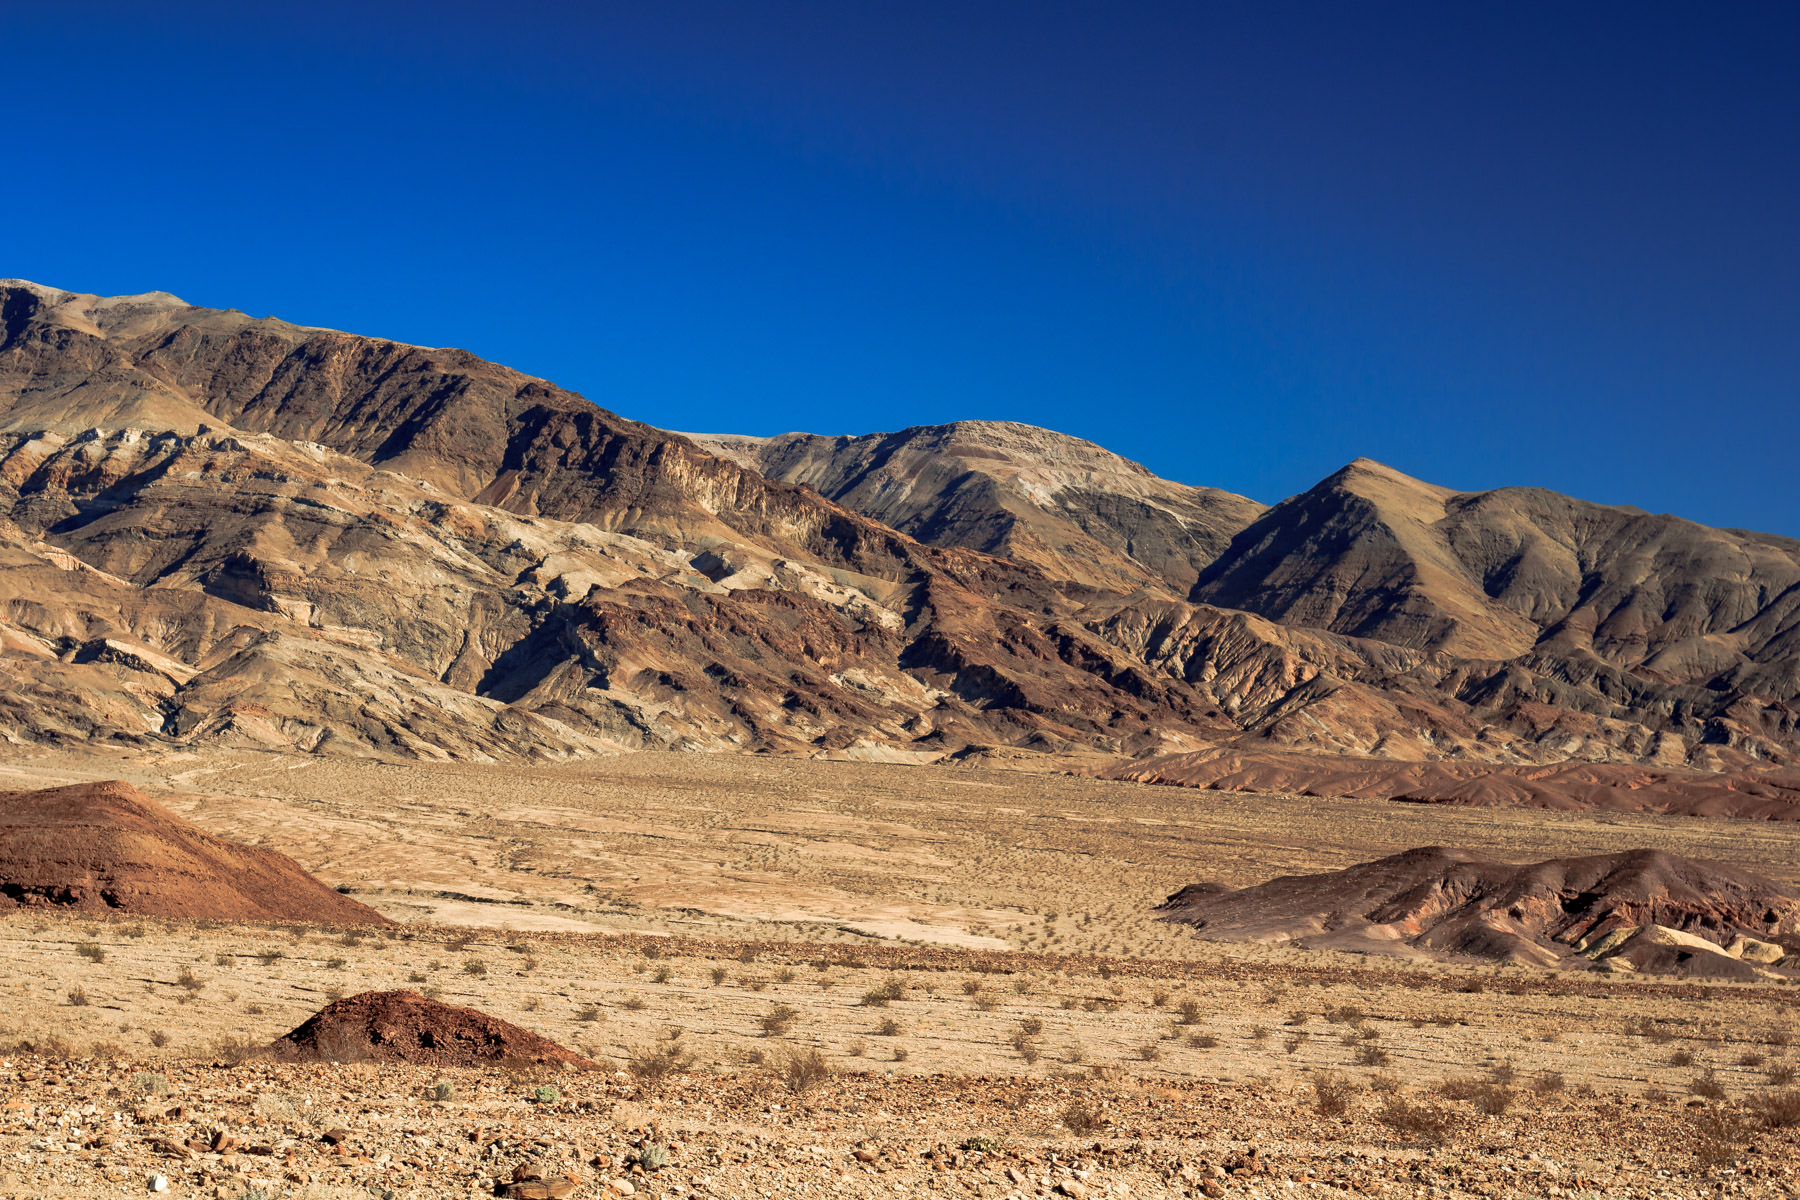 Mountains rise from the floor of the desert at Death Valley National Park, California.